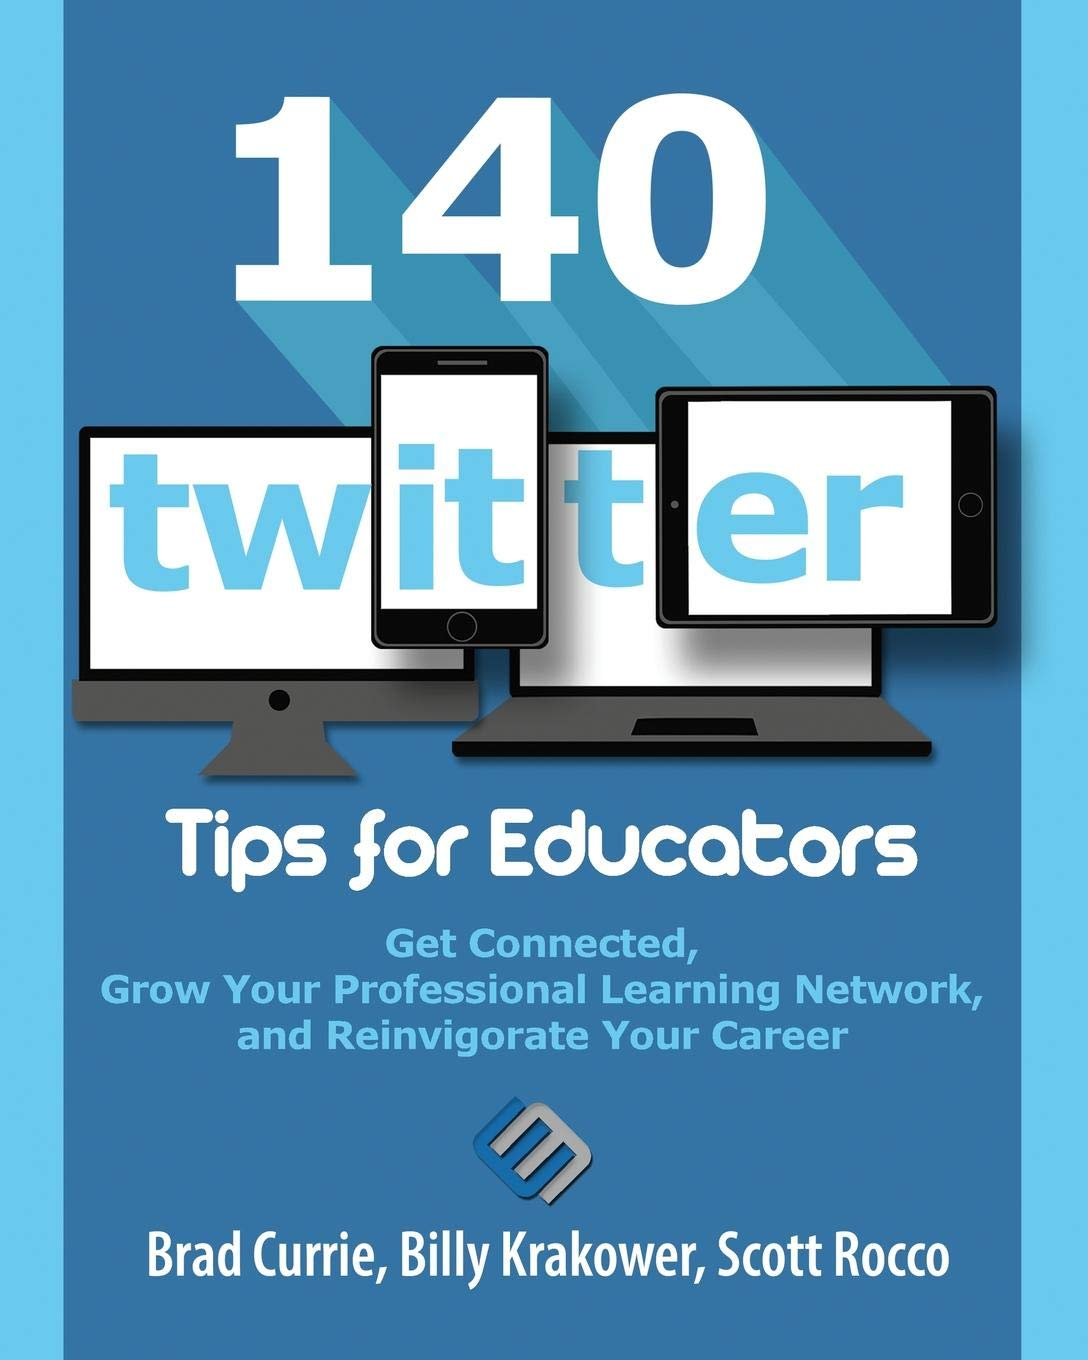 140 Twitter Tips for Educators: Get Connected, Grow Your